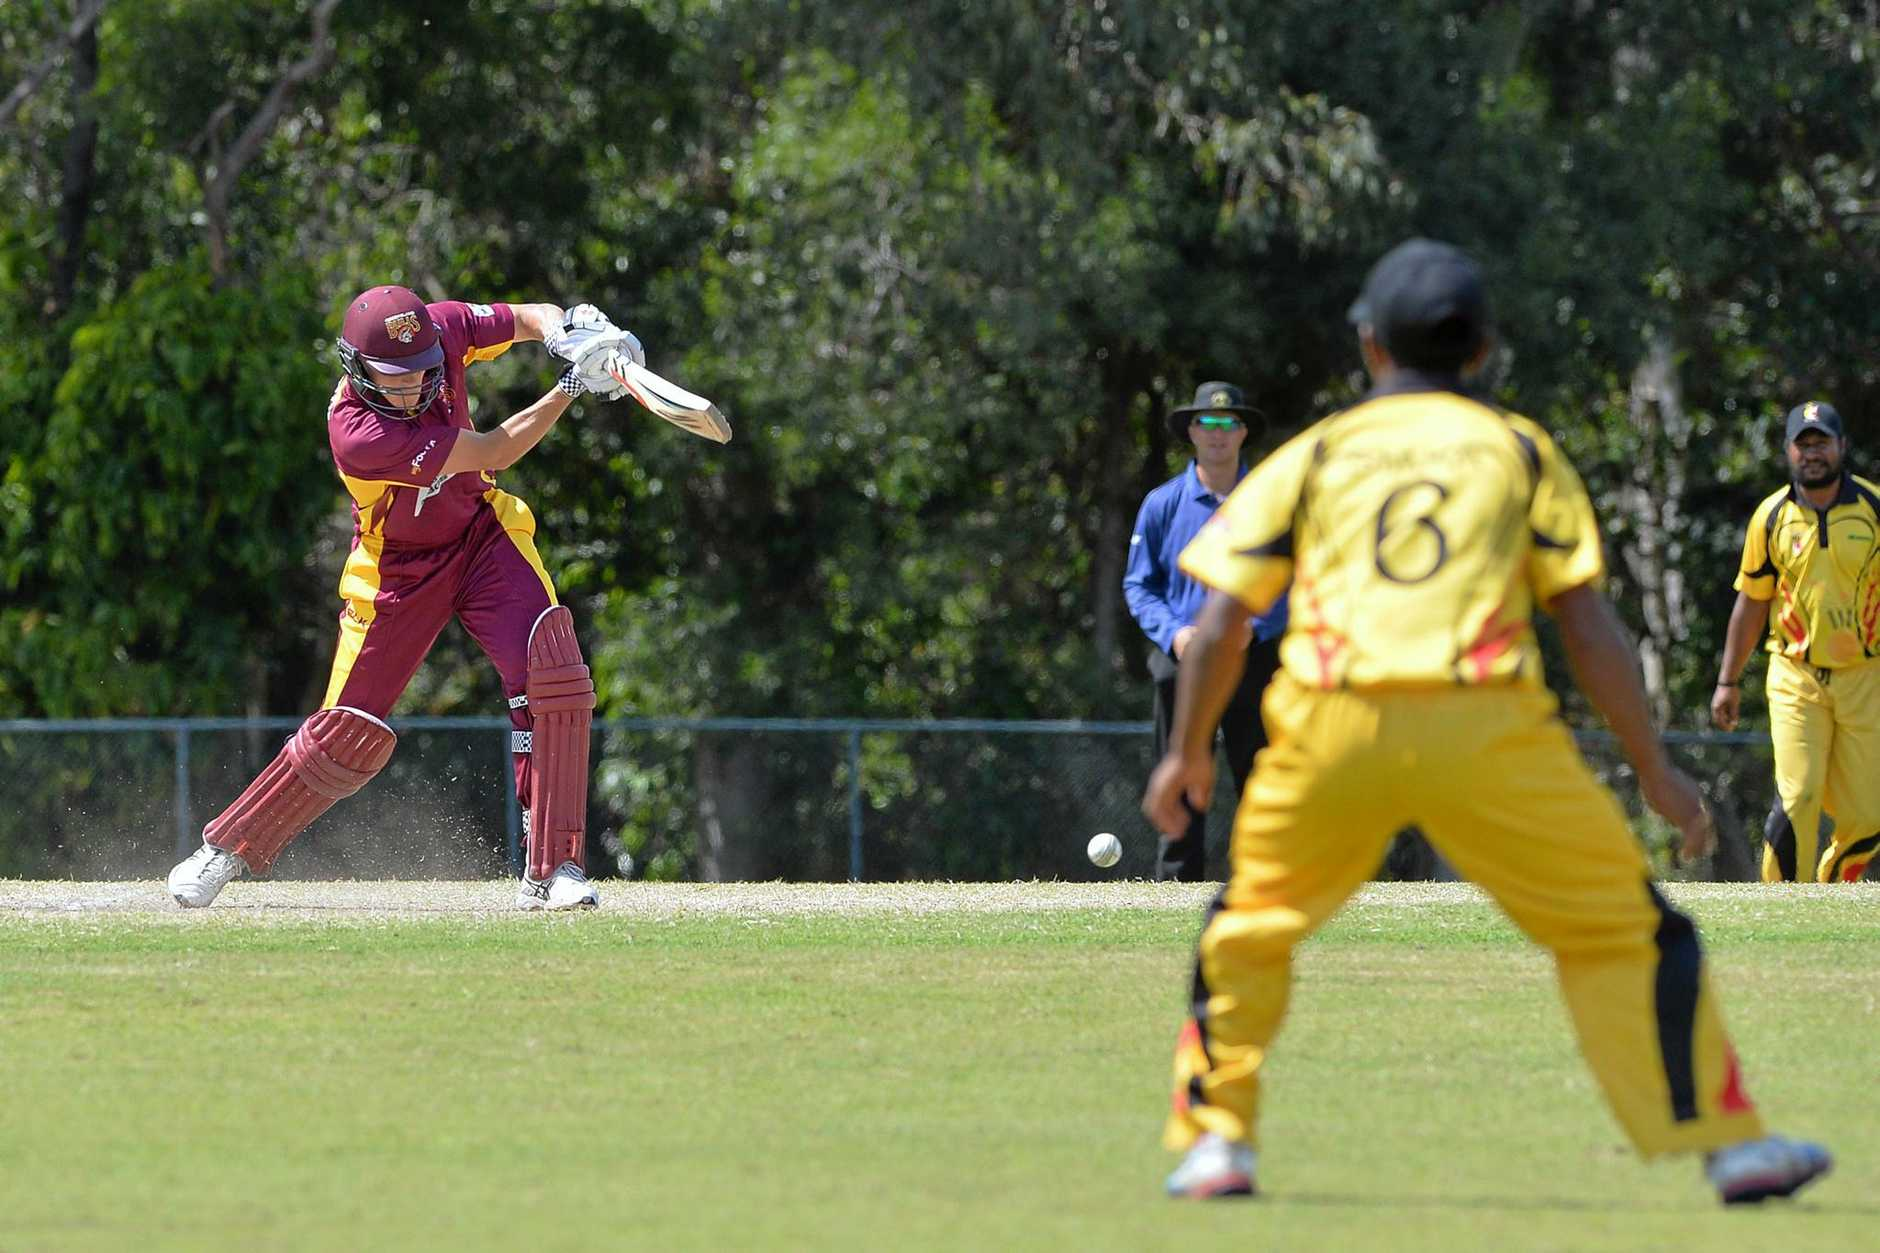 PRE-SEASON ACTION: Bulls player Charlie Hemphrey blazes away for Queensland in a match against Papua New Guinea at Buderim last year.